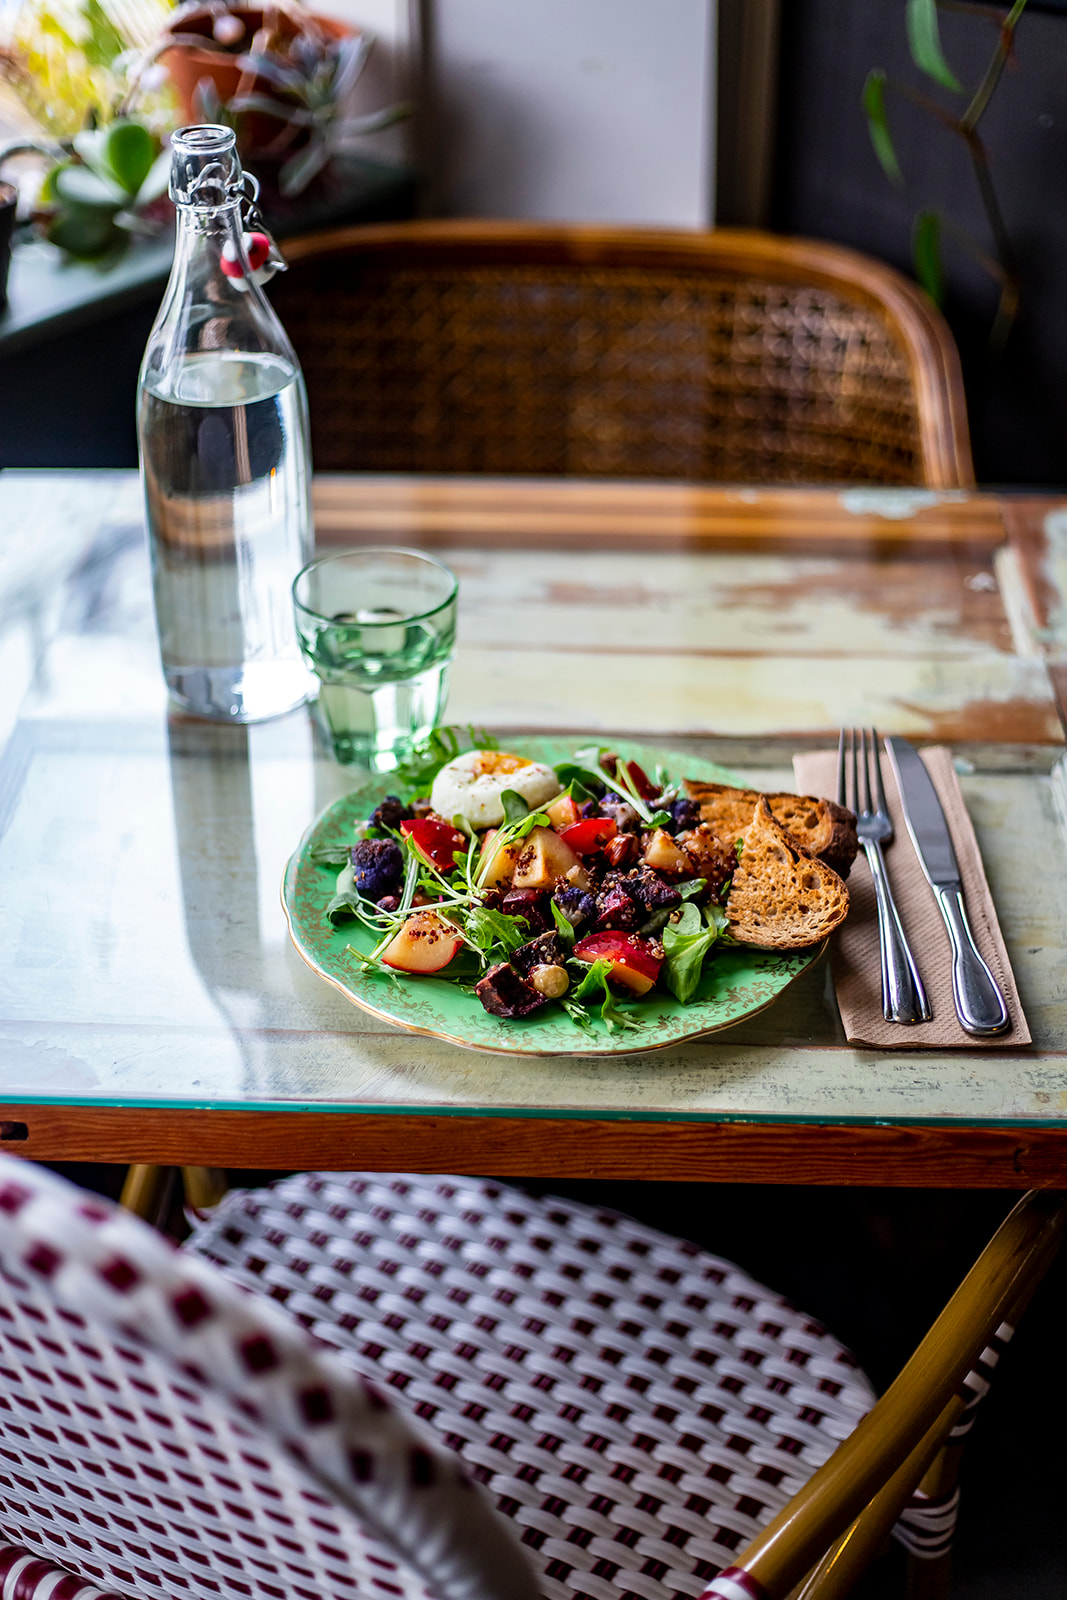 "The dining tables in Cafe Mia were made by her out of old doors, giving the decor a beautiful and rustic European vibe. Cafe Mia features seasonal, locally-sourced and ethical cuisine - every dish is prepared in house by Mia herself. Cafe Mia is tucked away near the West Seattle Junction on SW Oregon Street. The perfect spot for brunch after hitting the farmers market on Sunday! Find them on Instagram{&nbsp;}<a  href=""https://www.instagram.com/cafe.mia/?hl=en"" target=""_blank"" title=""https://www.instagram.com/cafe.mia/?hl=en"">@cafe.mia</a>. (Image:{&nbsp;}Samantha Witt / Seattle Refined)"